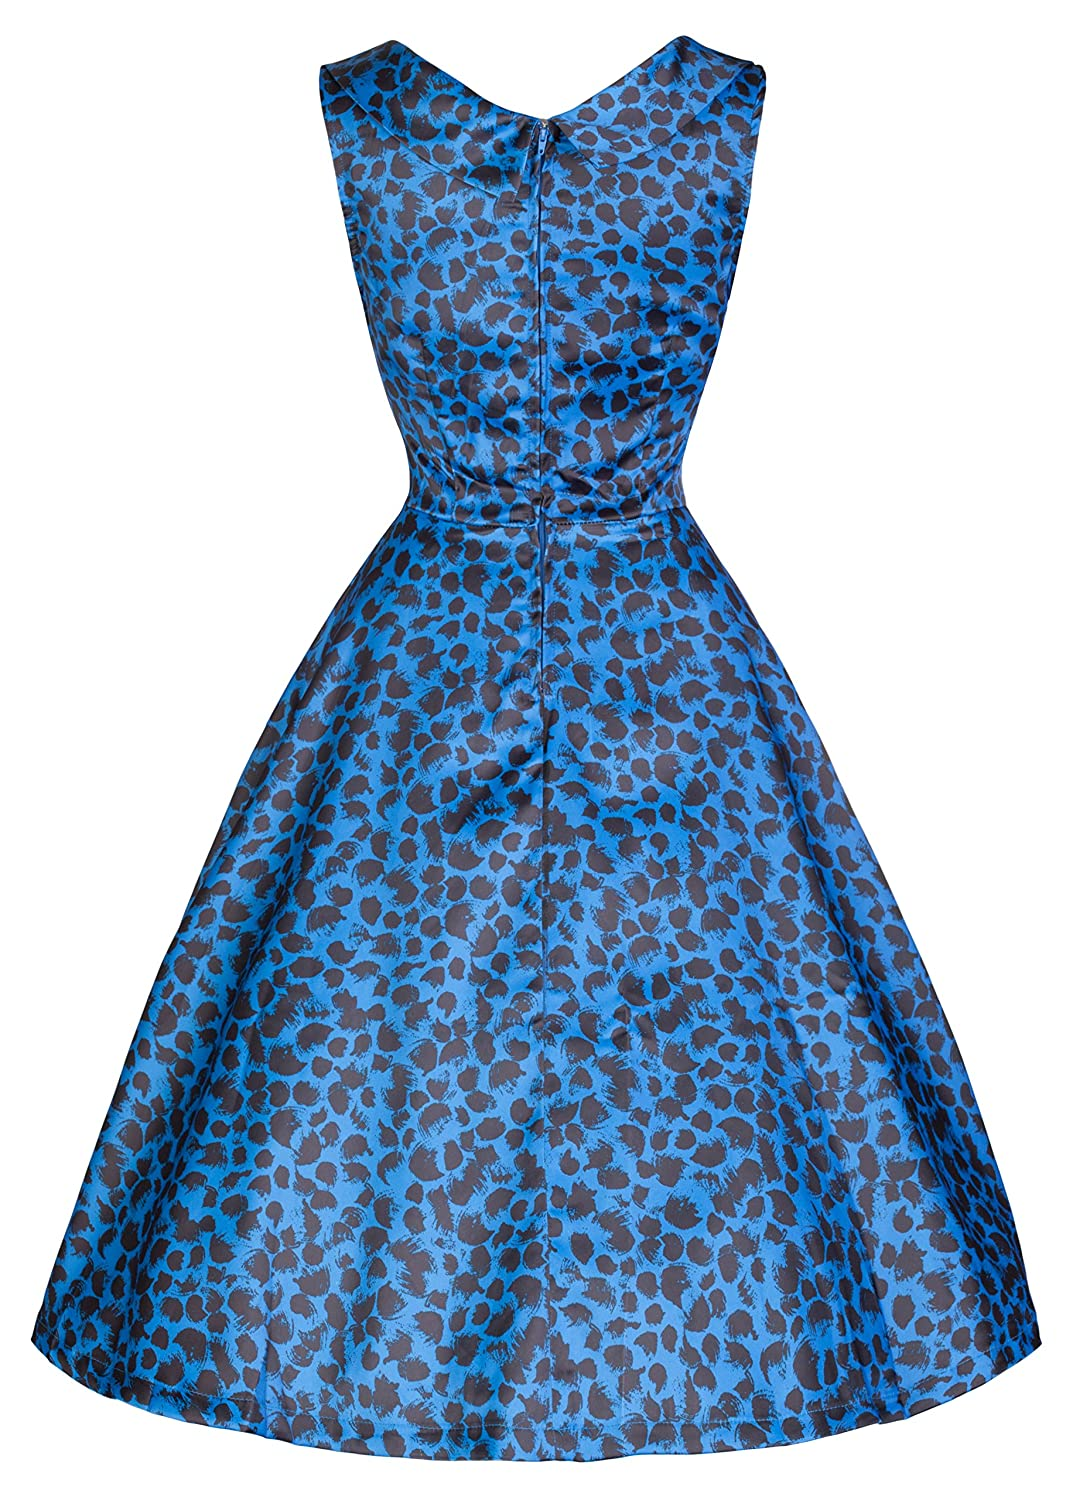 Amazon.com: Lindy Bop \'Ophelia\' Vintage 50\'s Electric Blue Print ...